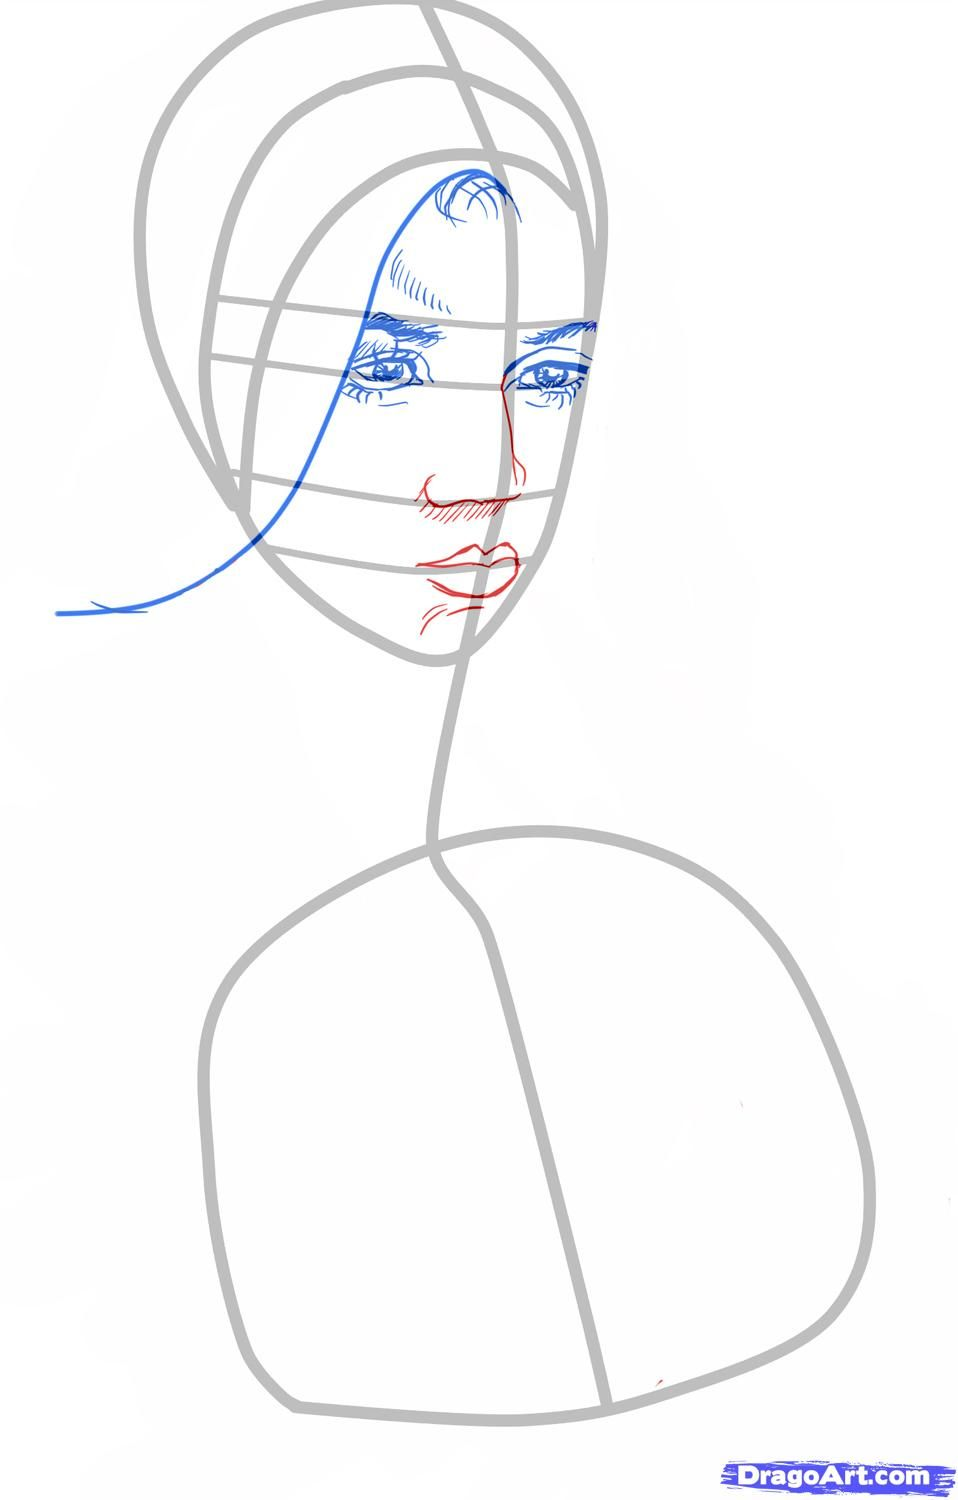 How to draw Stephane Salvatore's portrait with a pencil step by step 3